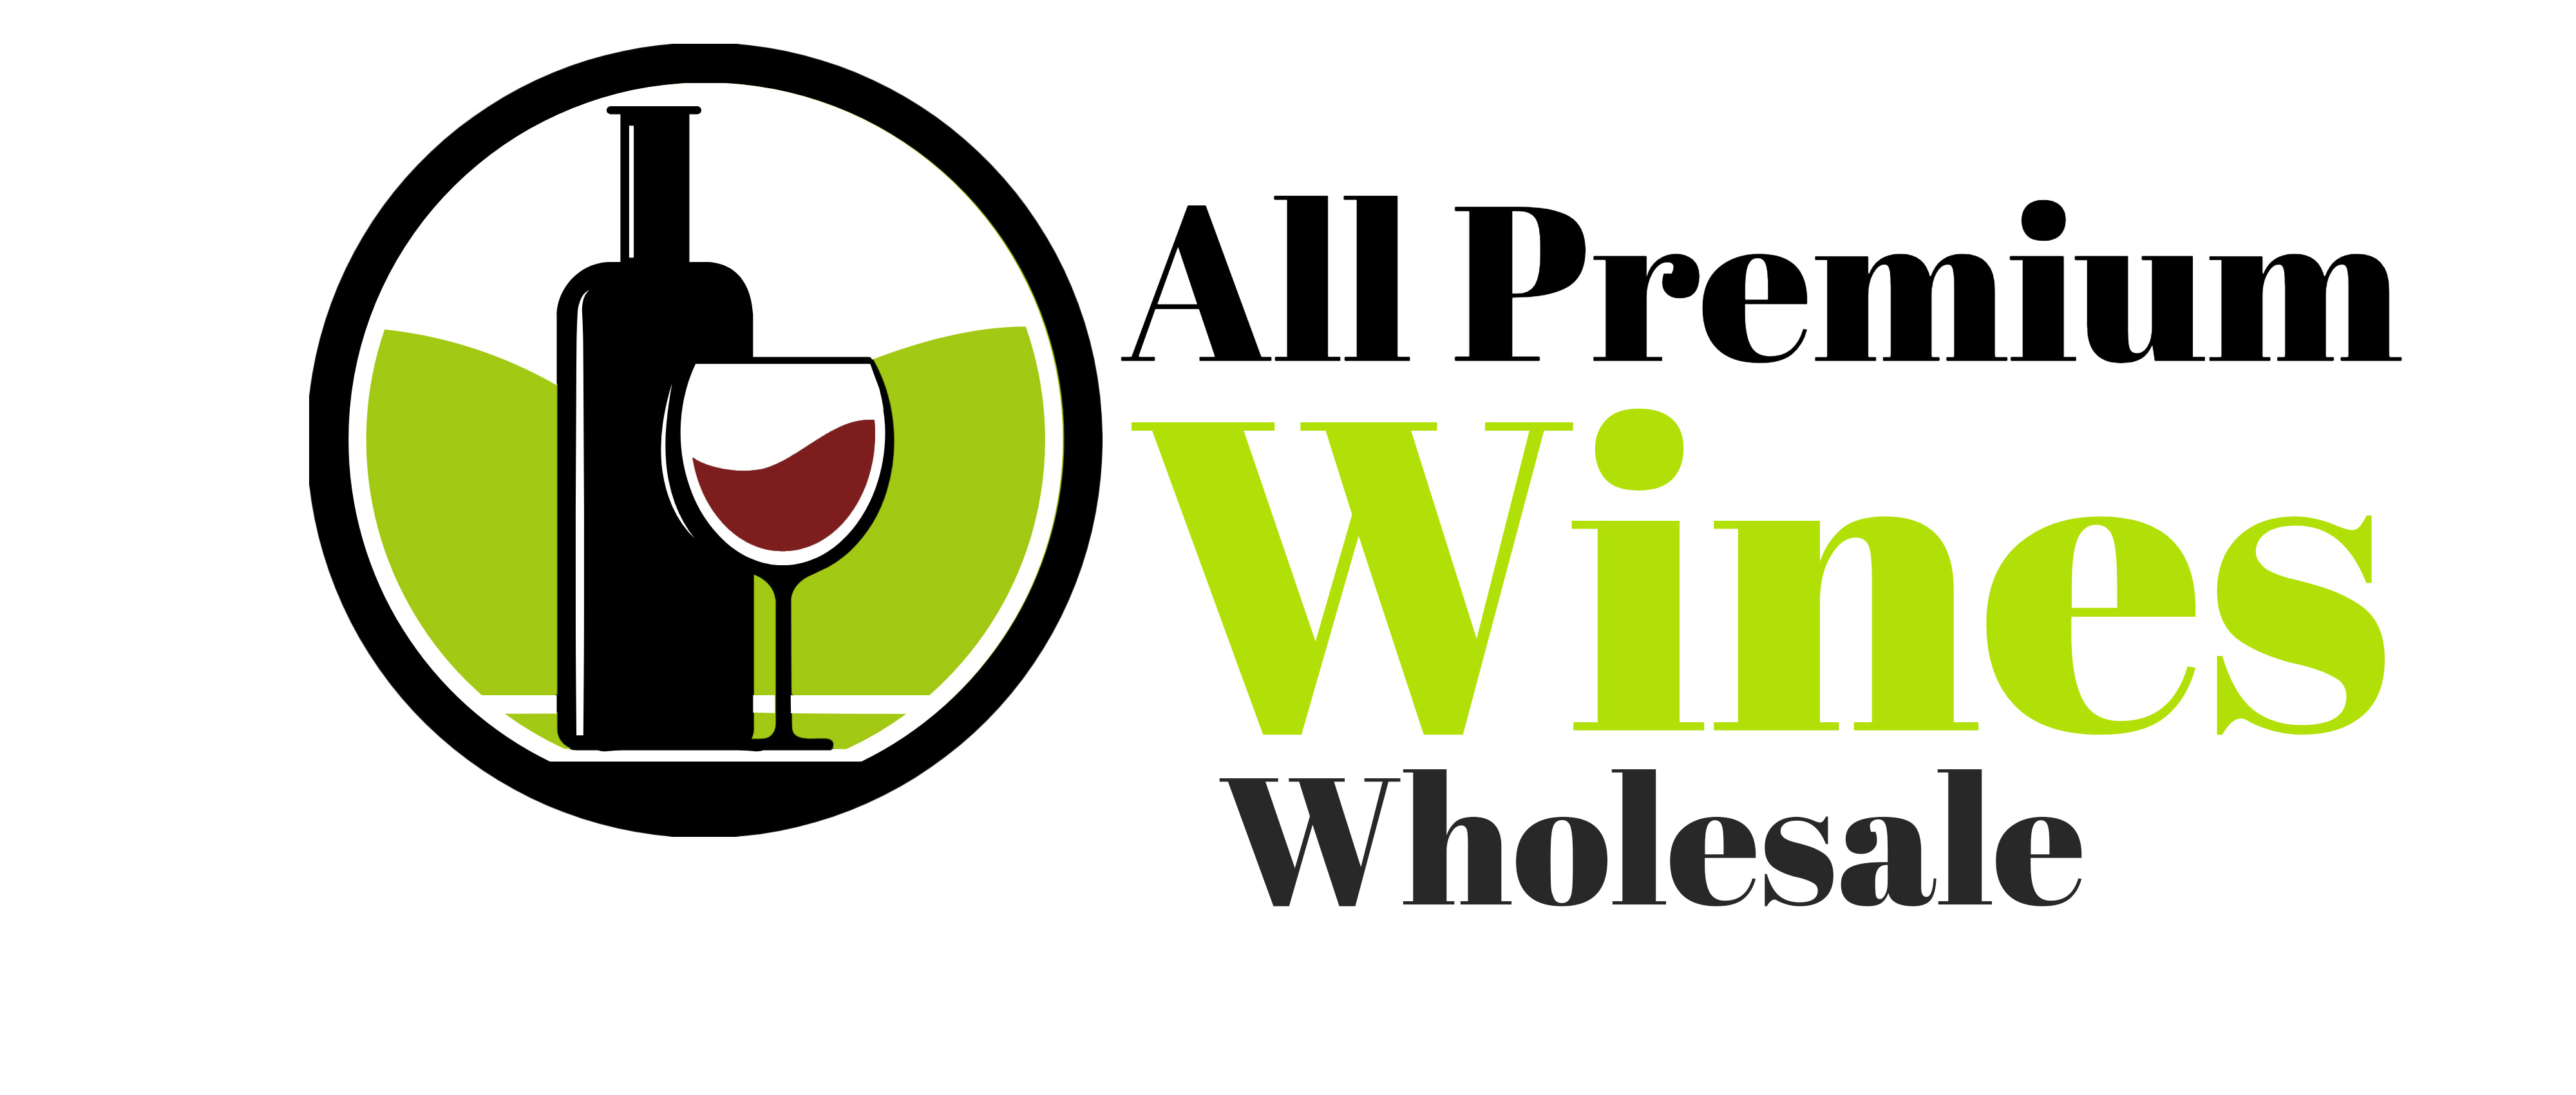 All premium wines logo wholesale